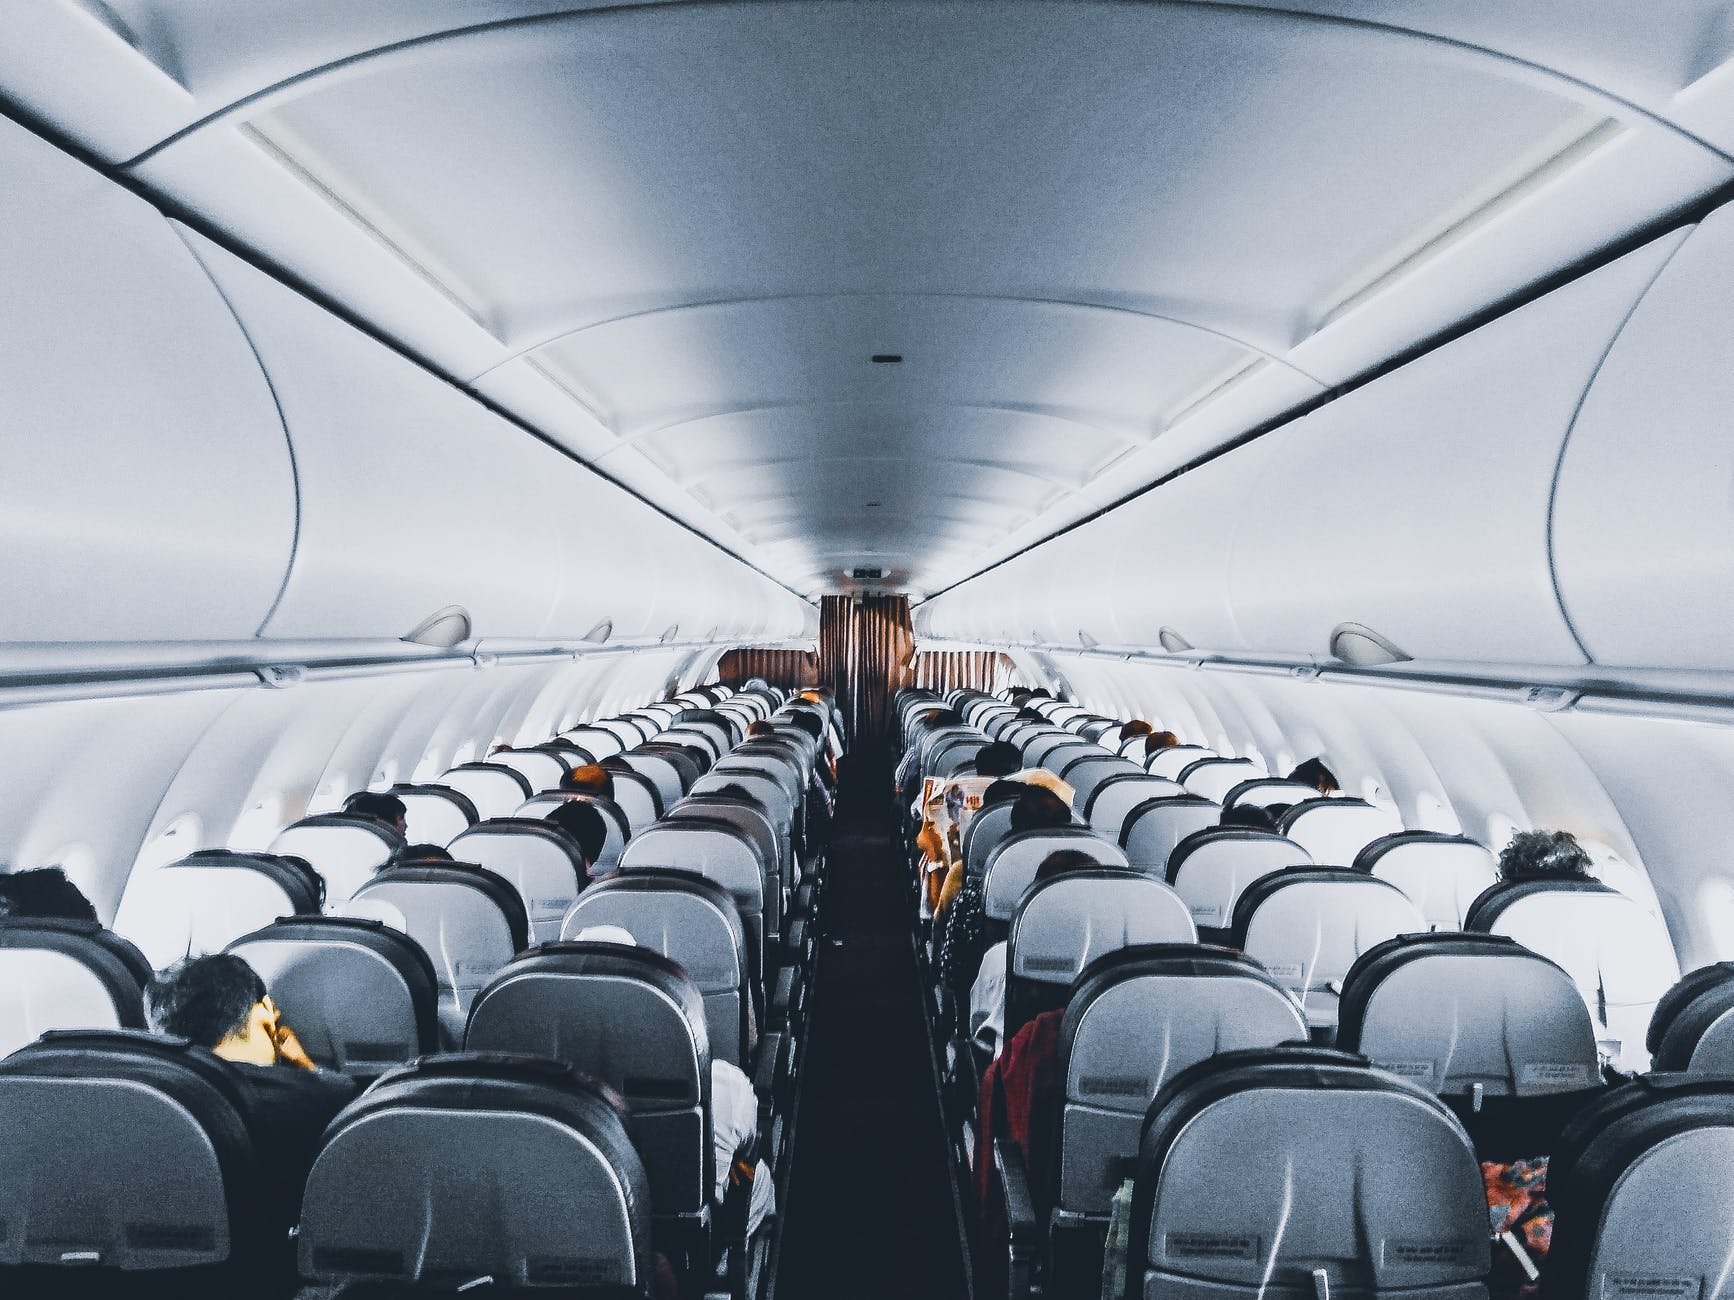 people inside commercial air plane